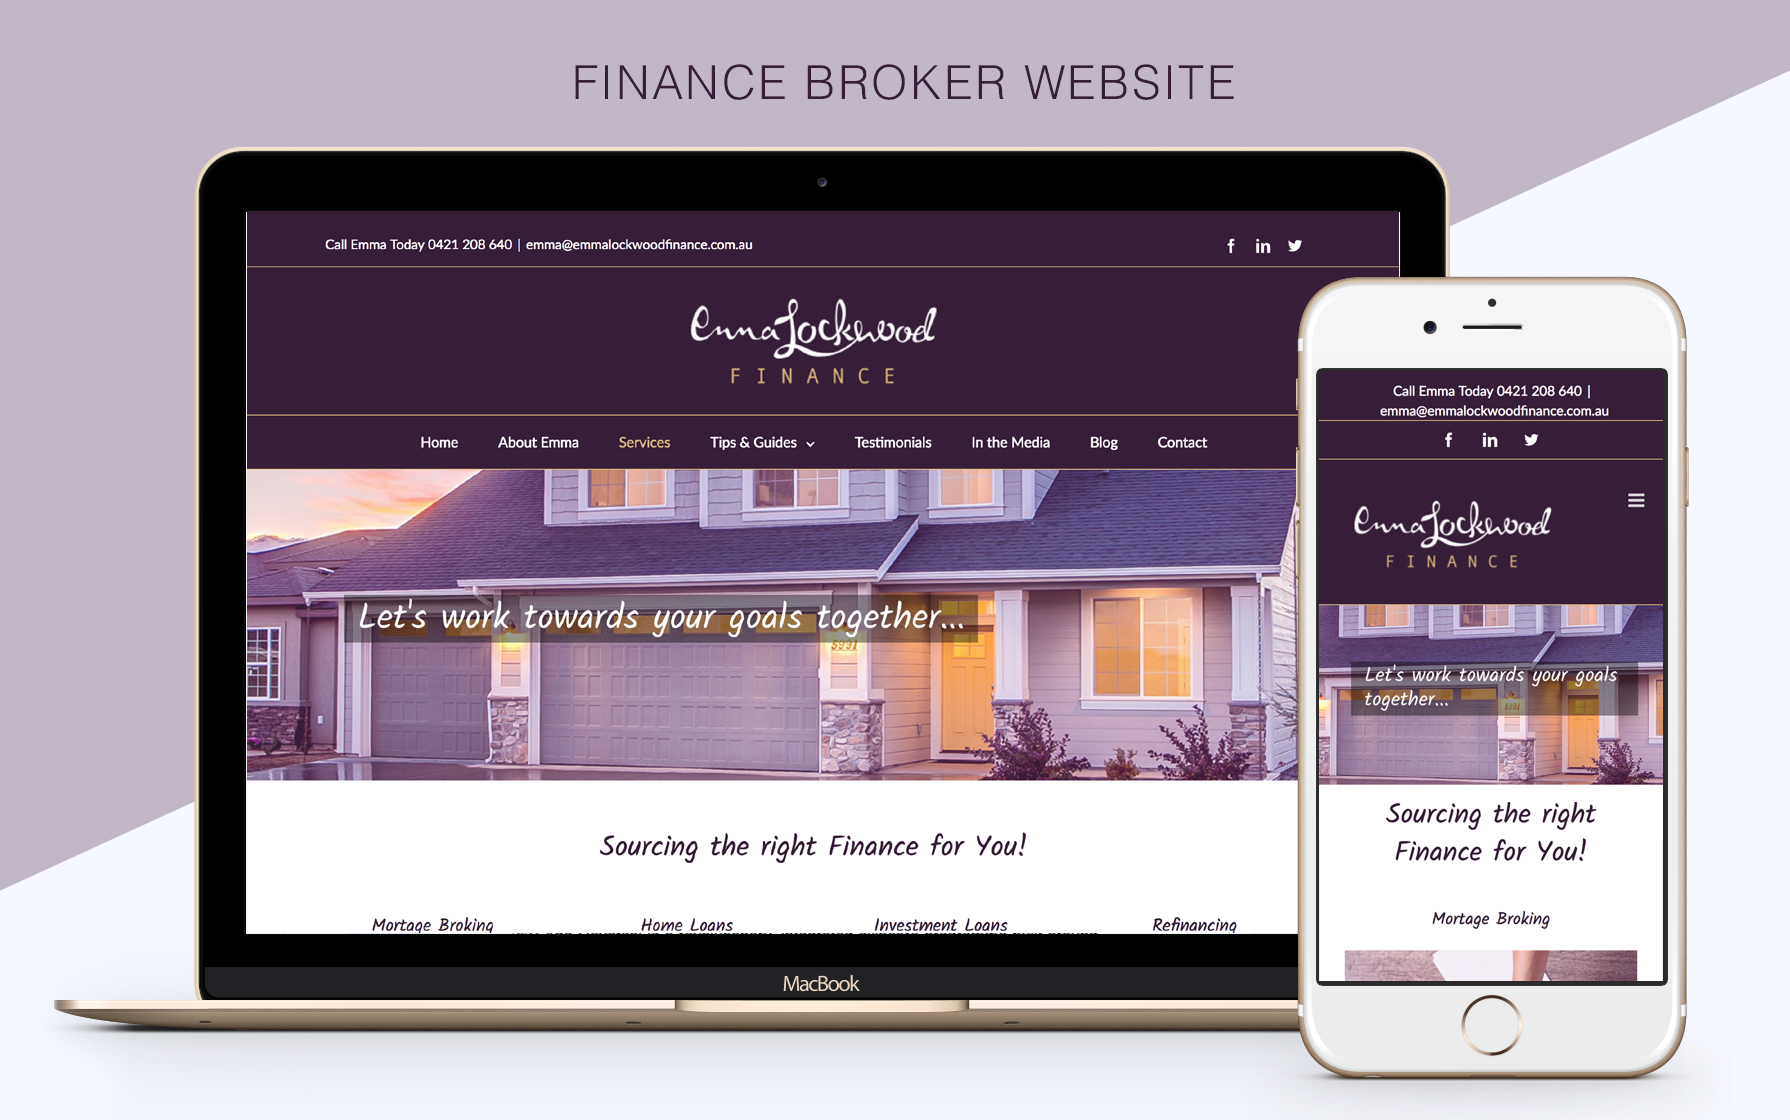 Finance broker website design